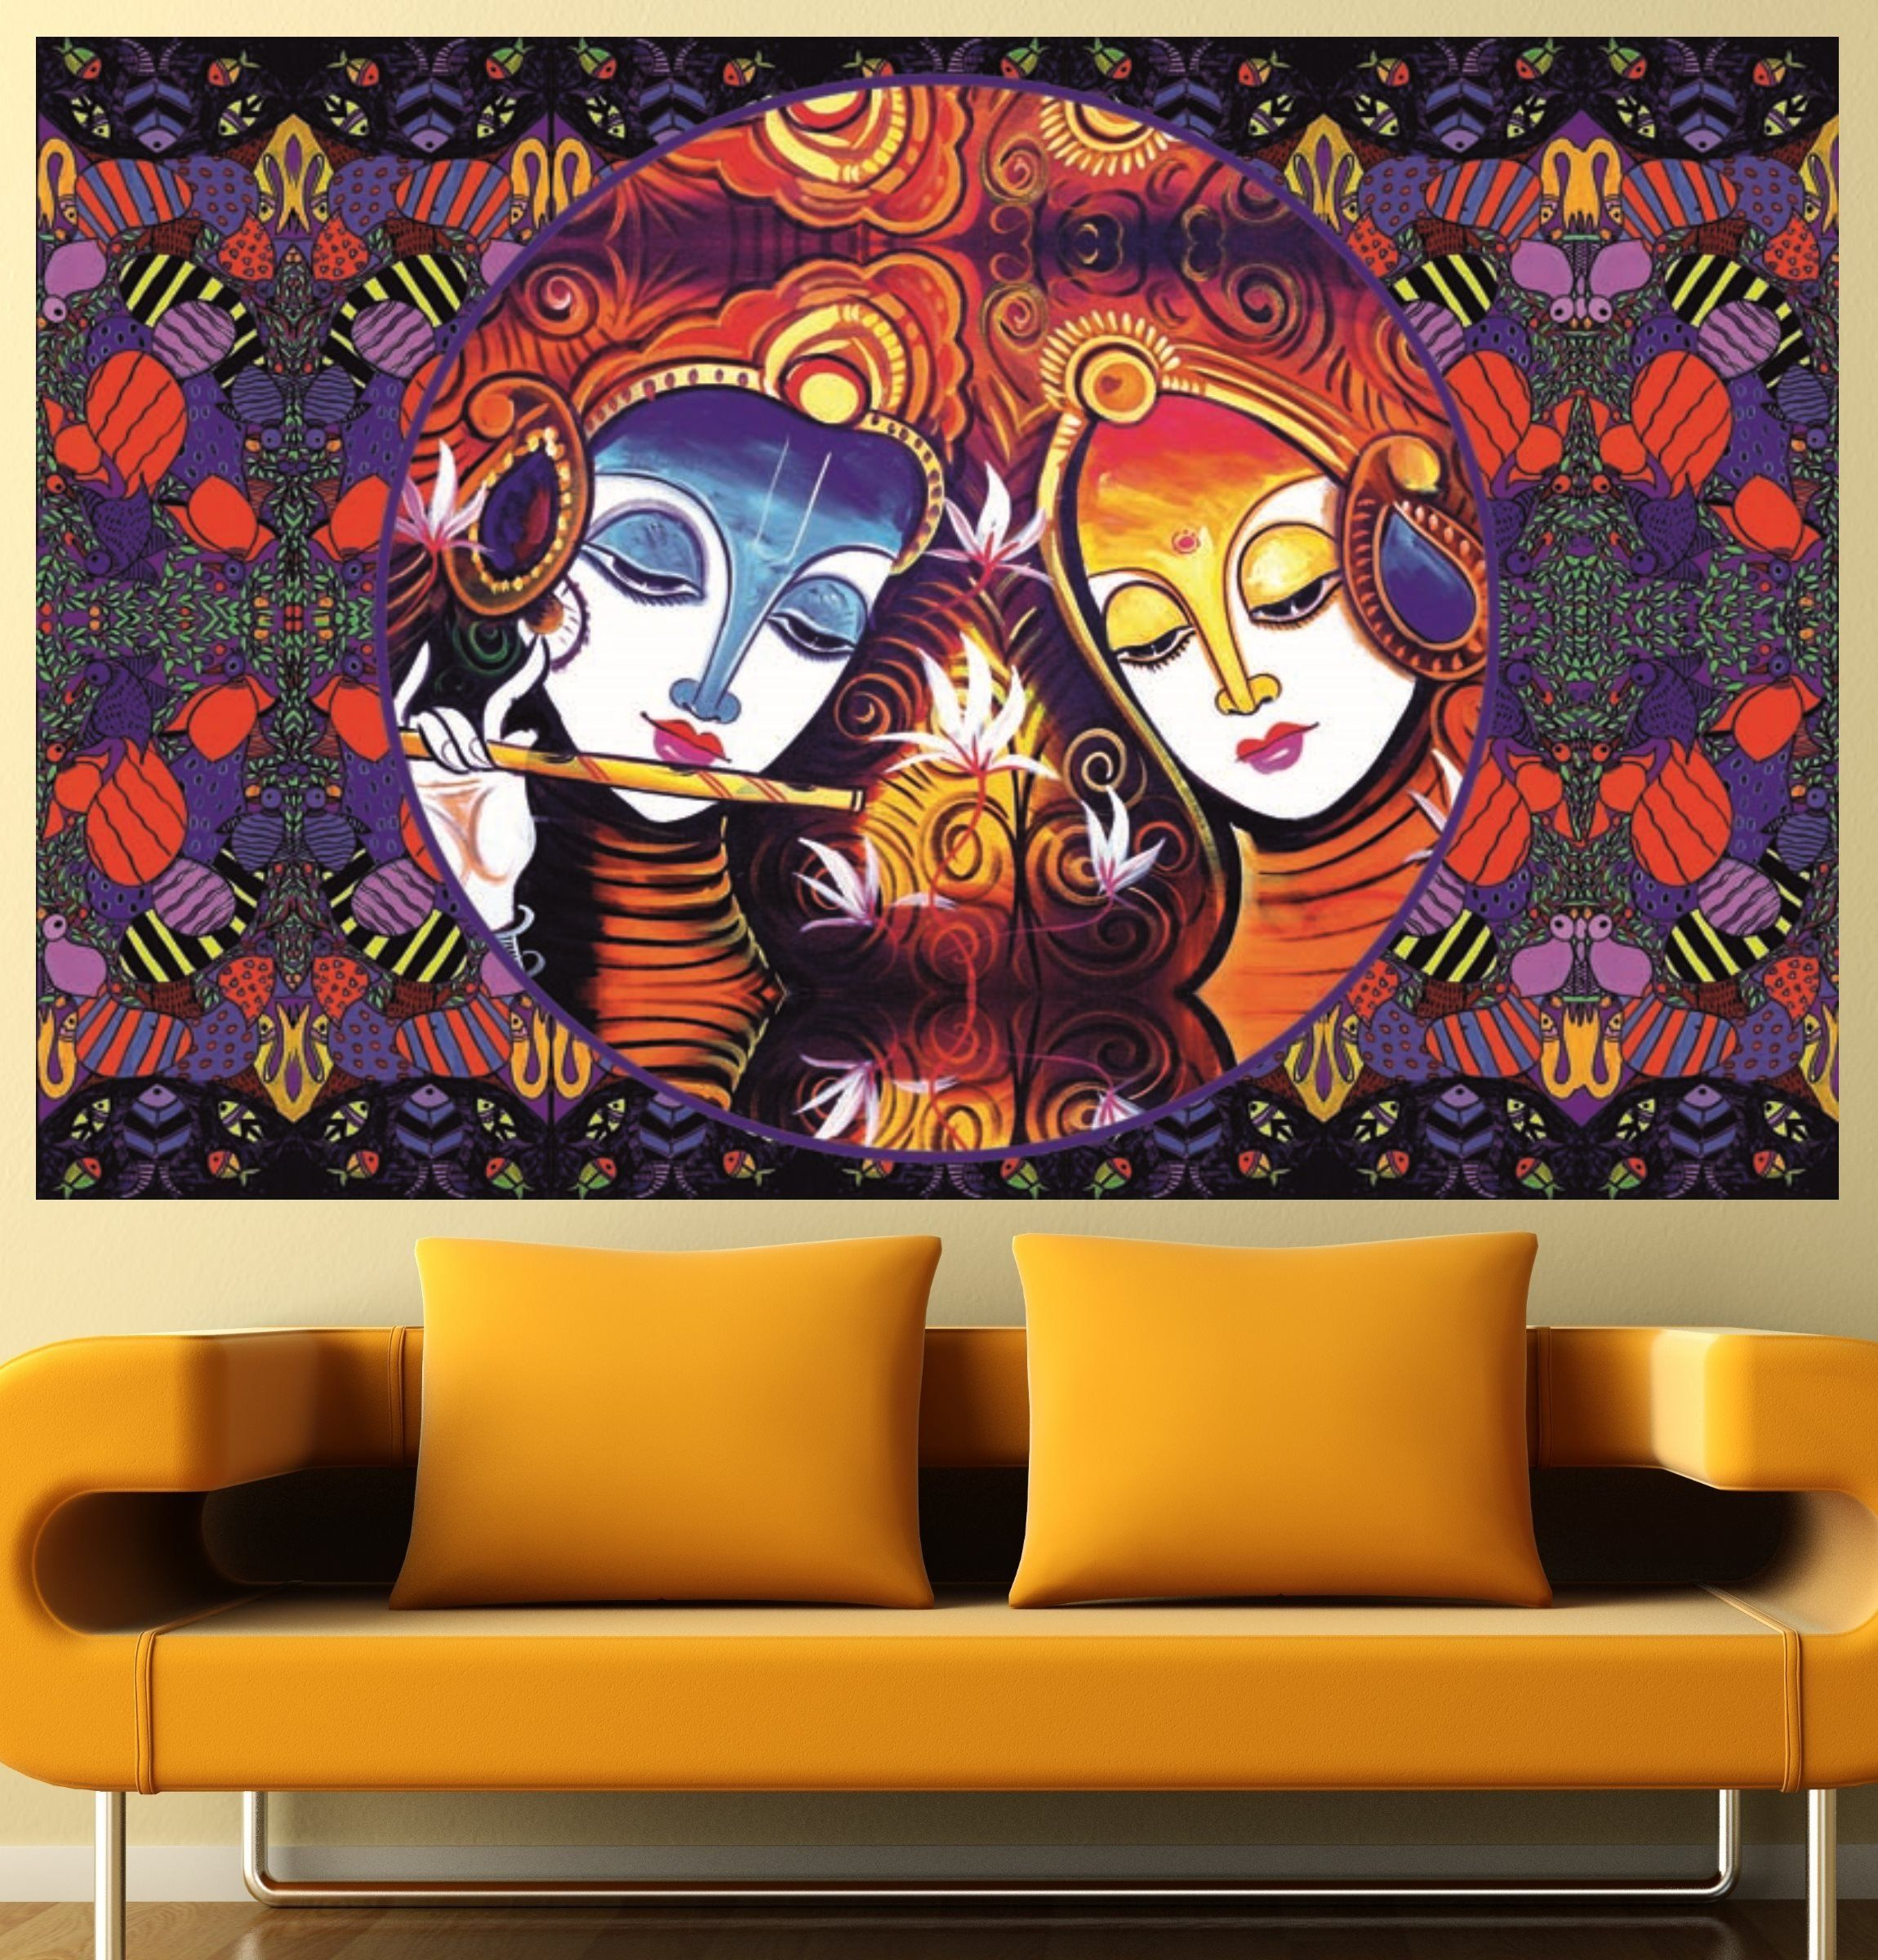 Imperialwallart777 100 artwork exclusive radha krishna deity wall artwork exclusive radha krishna deity wall decal print poster easy to peel and stick wall art self adhesive vinyl sticker waterproof wallpaper art mural amipublicfo Choice Image